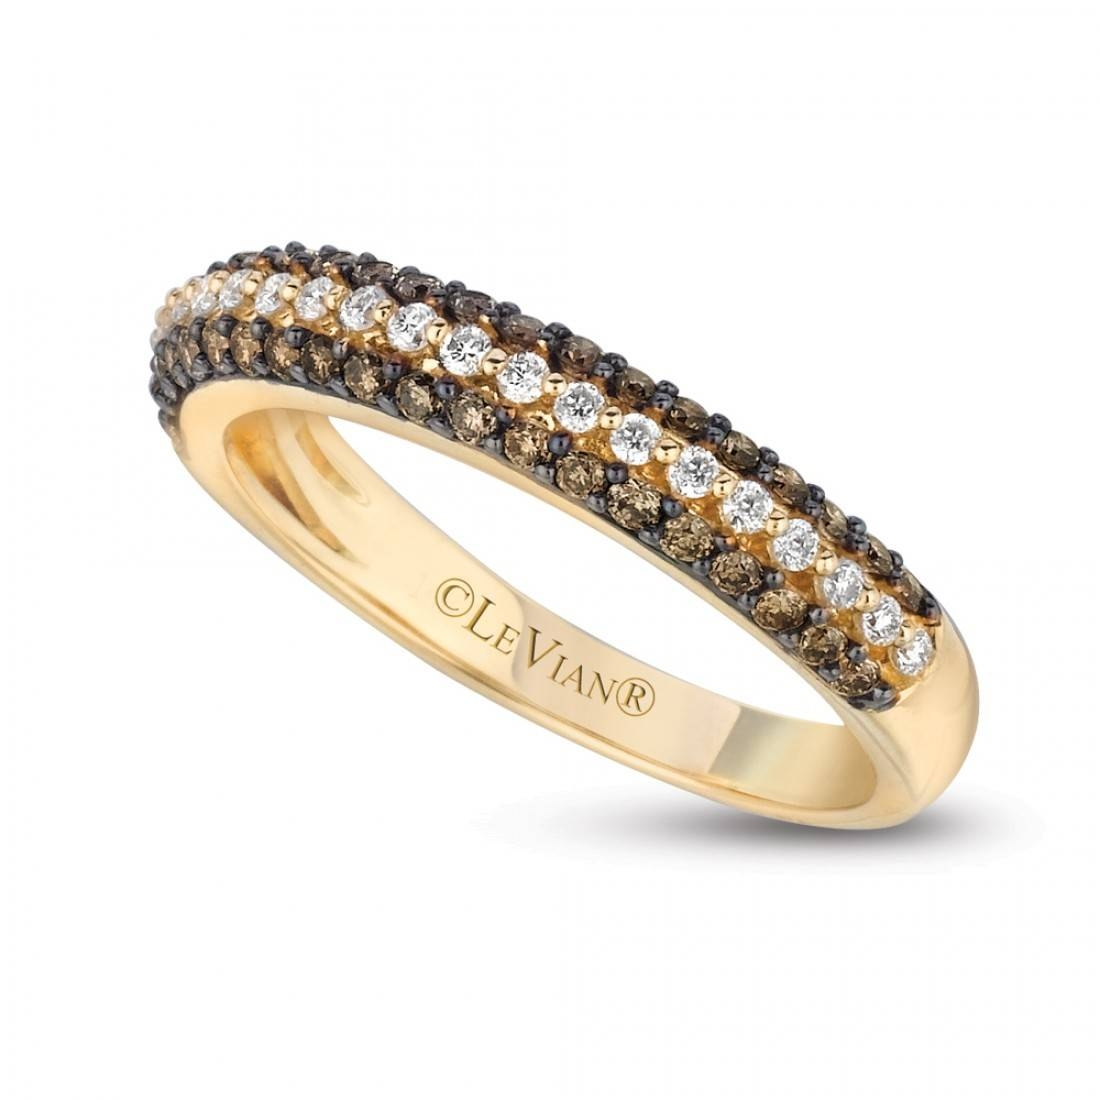 Le Vian 14k Yellow Gold Chocolate Pave Diamond Wedding Band In Le Vian Wedding Bands (View 9 of 15)